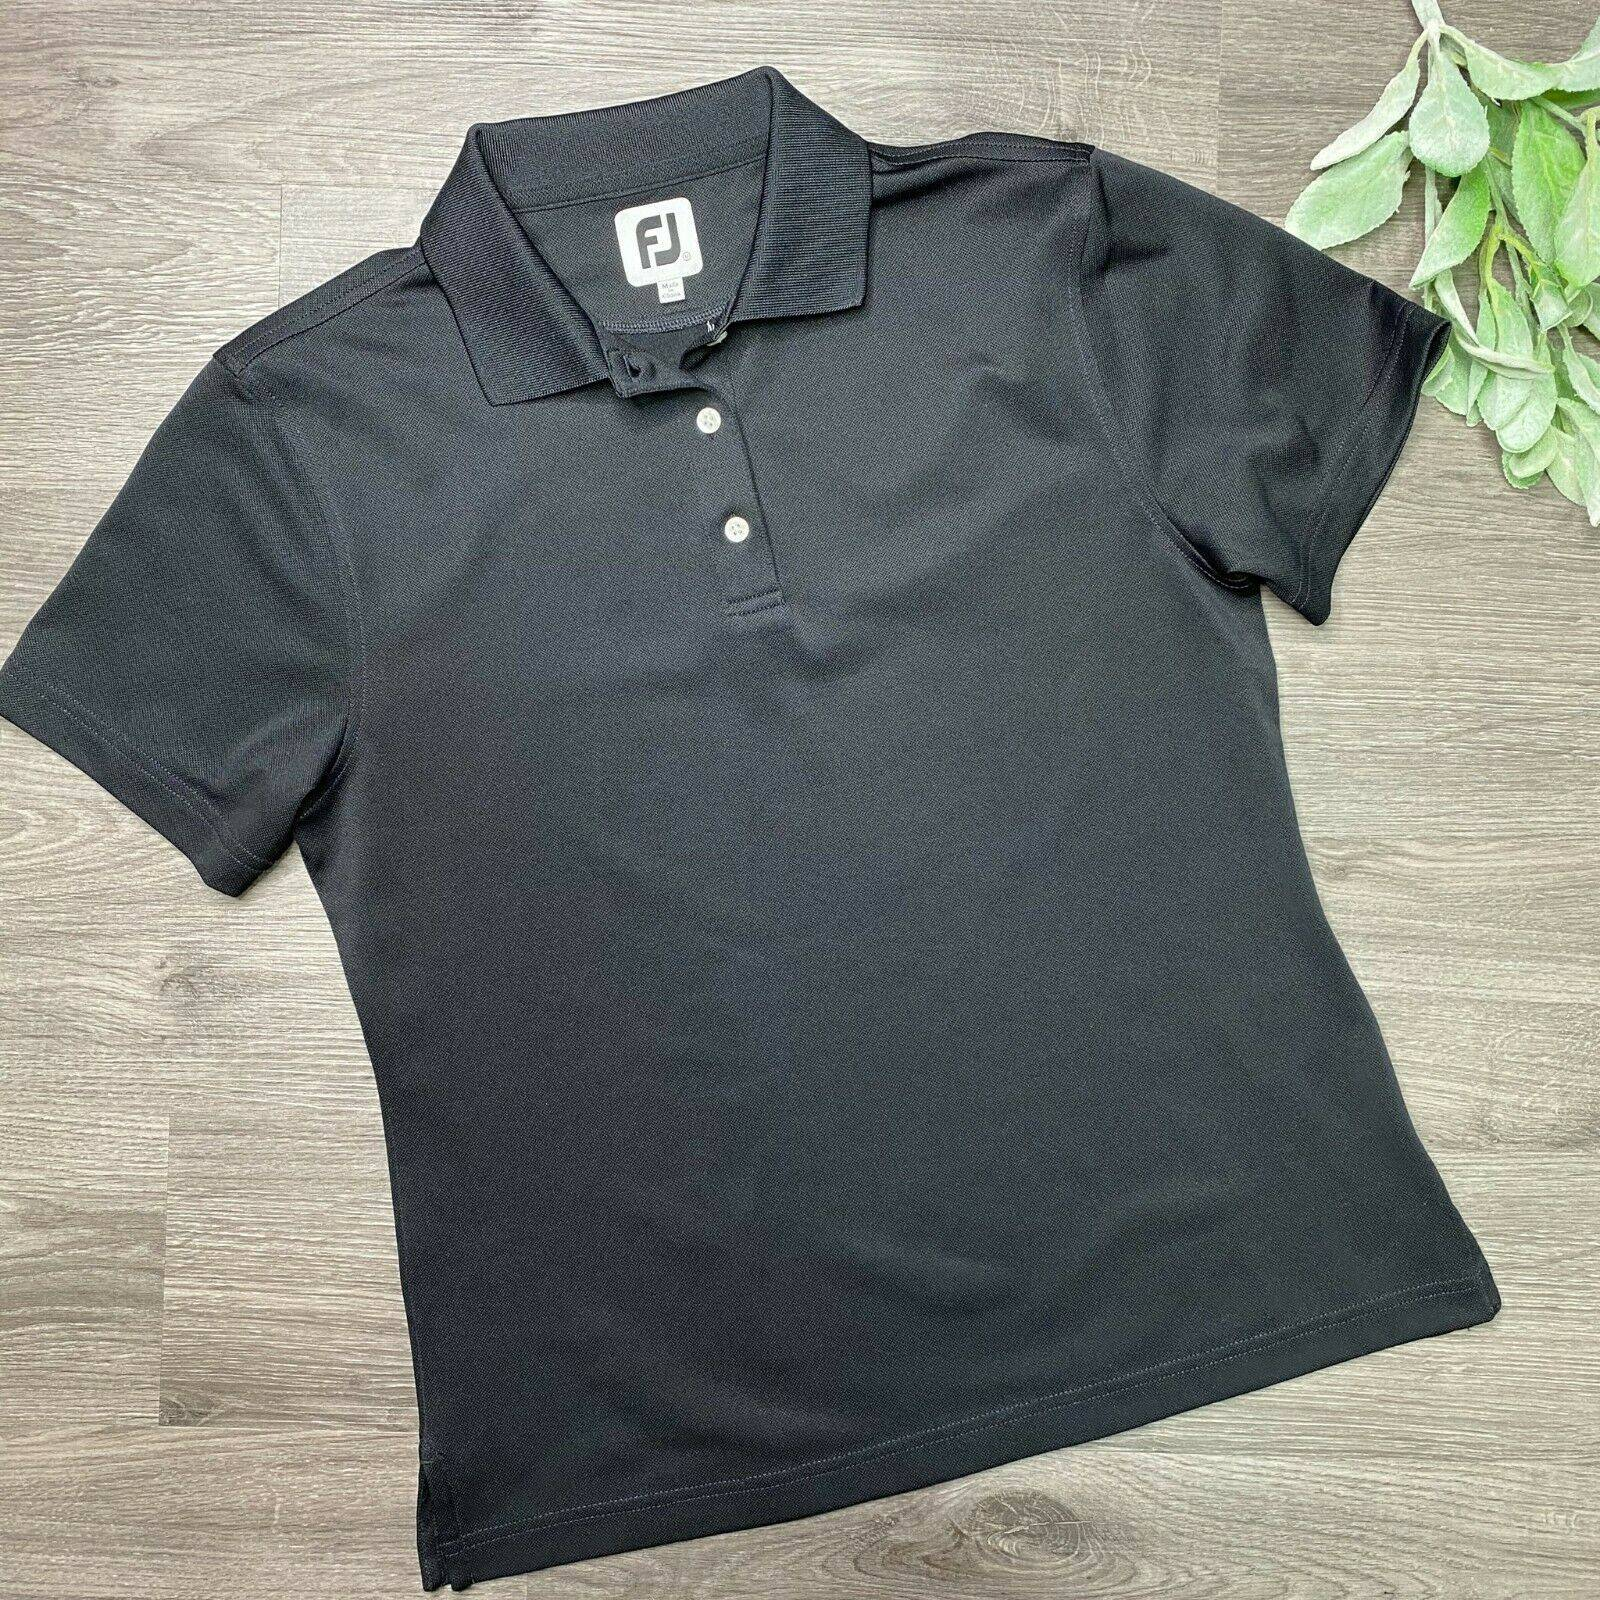 FOOTJOY sz M womens black golf polo